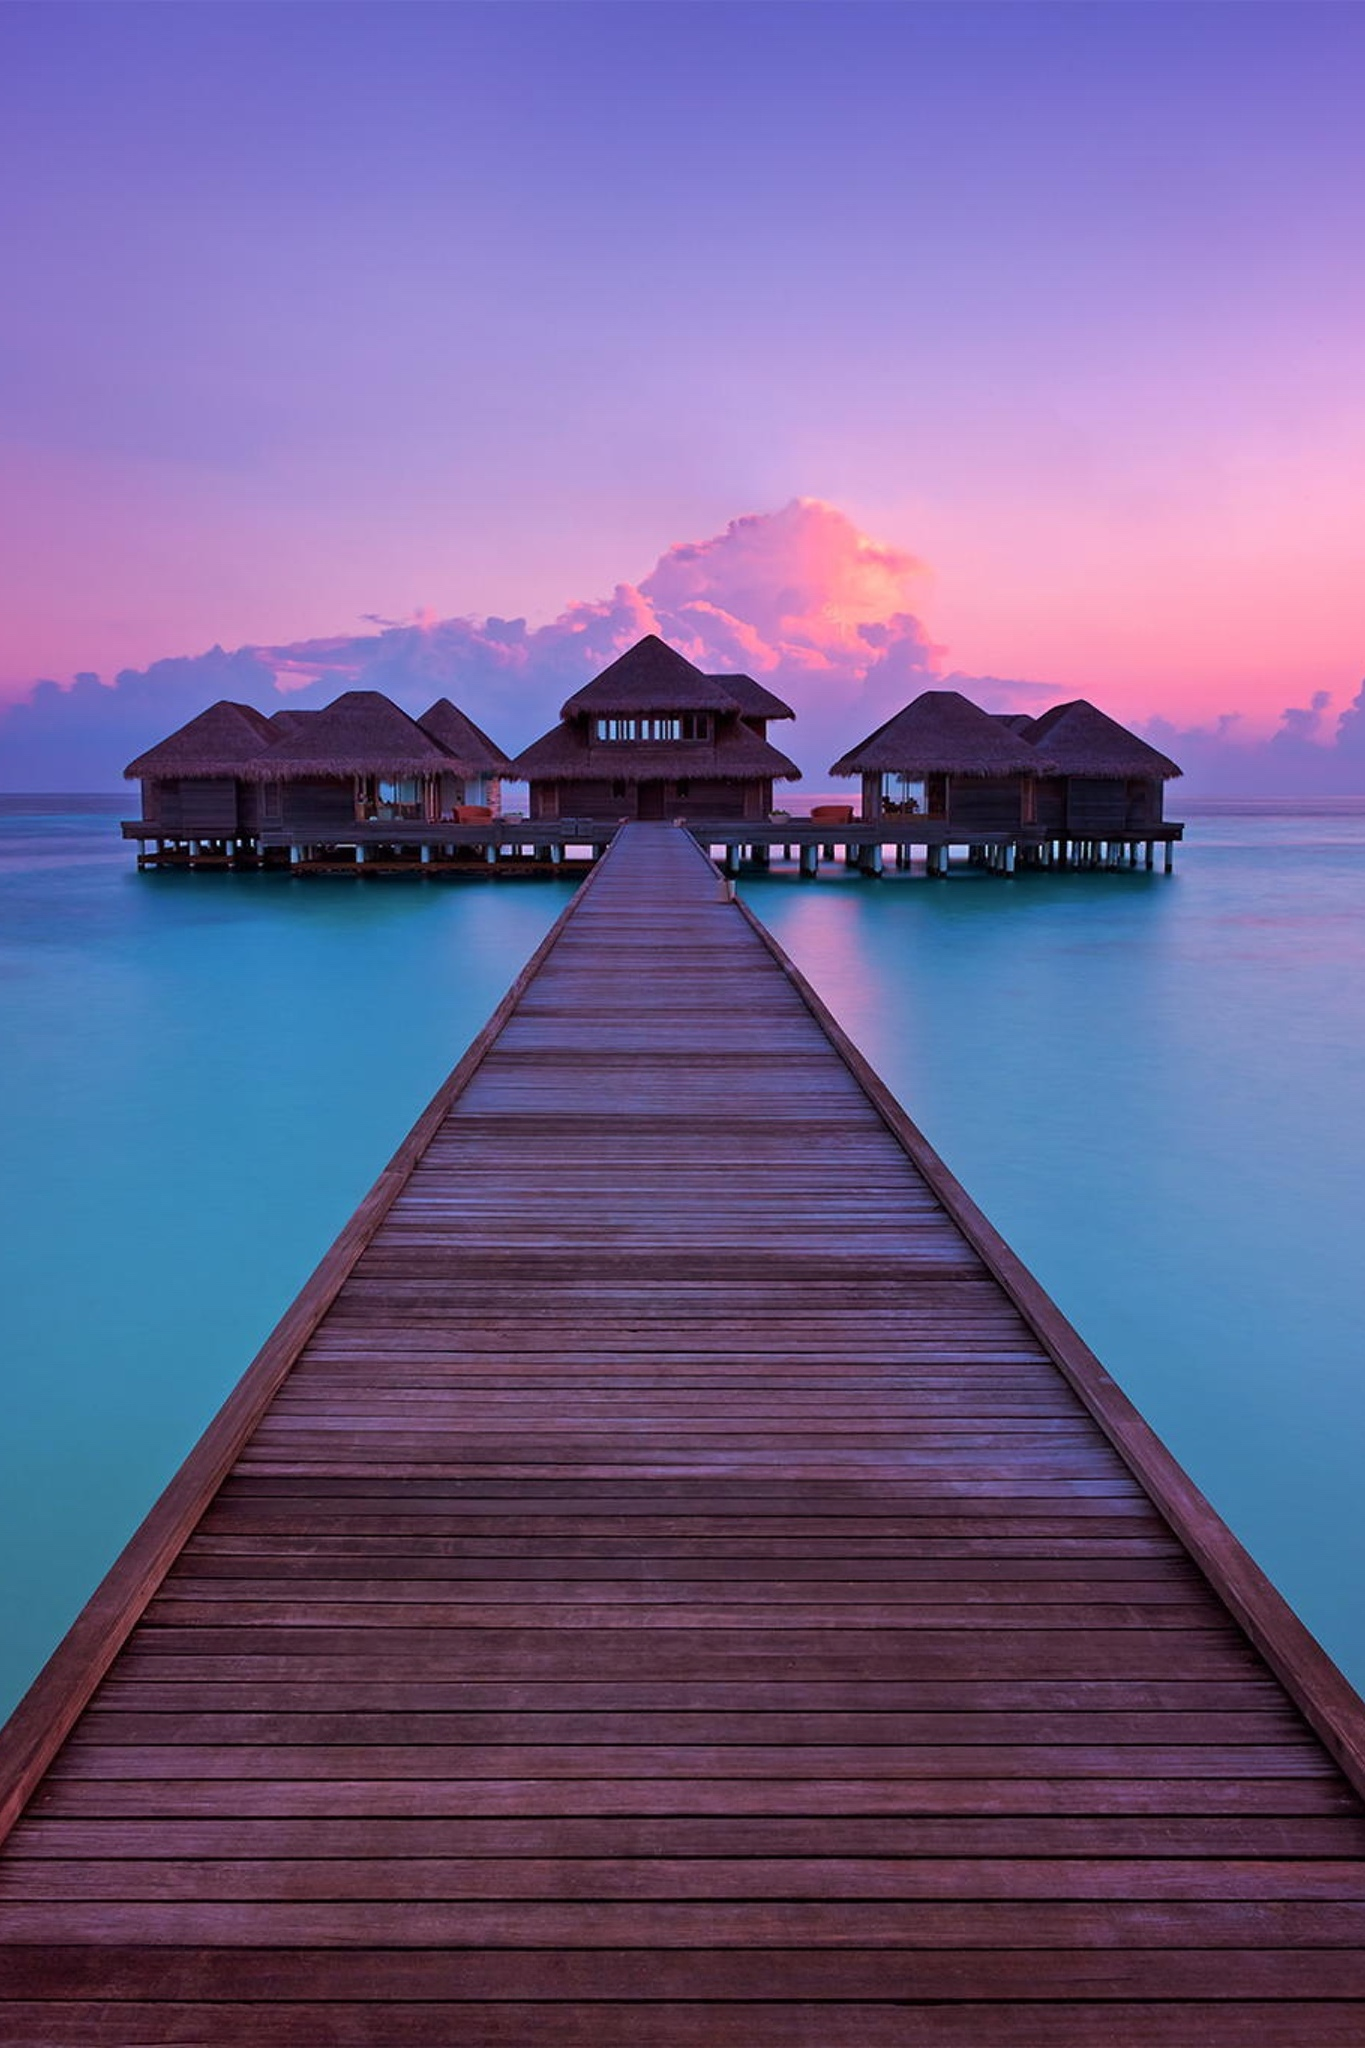 bora water sunset dawn travel dusk sea sky pier evening reflection landscape